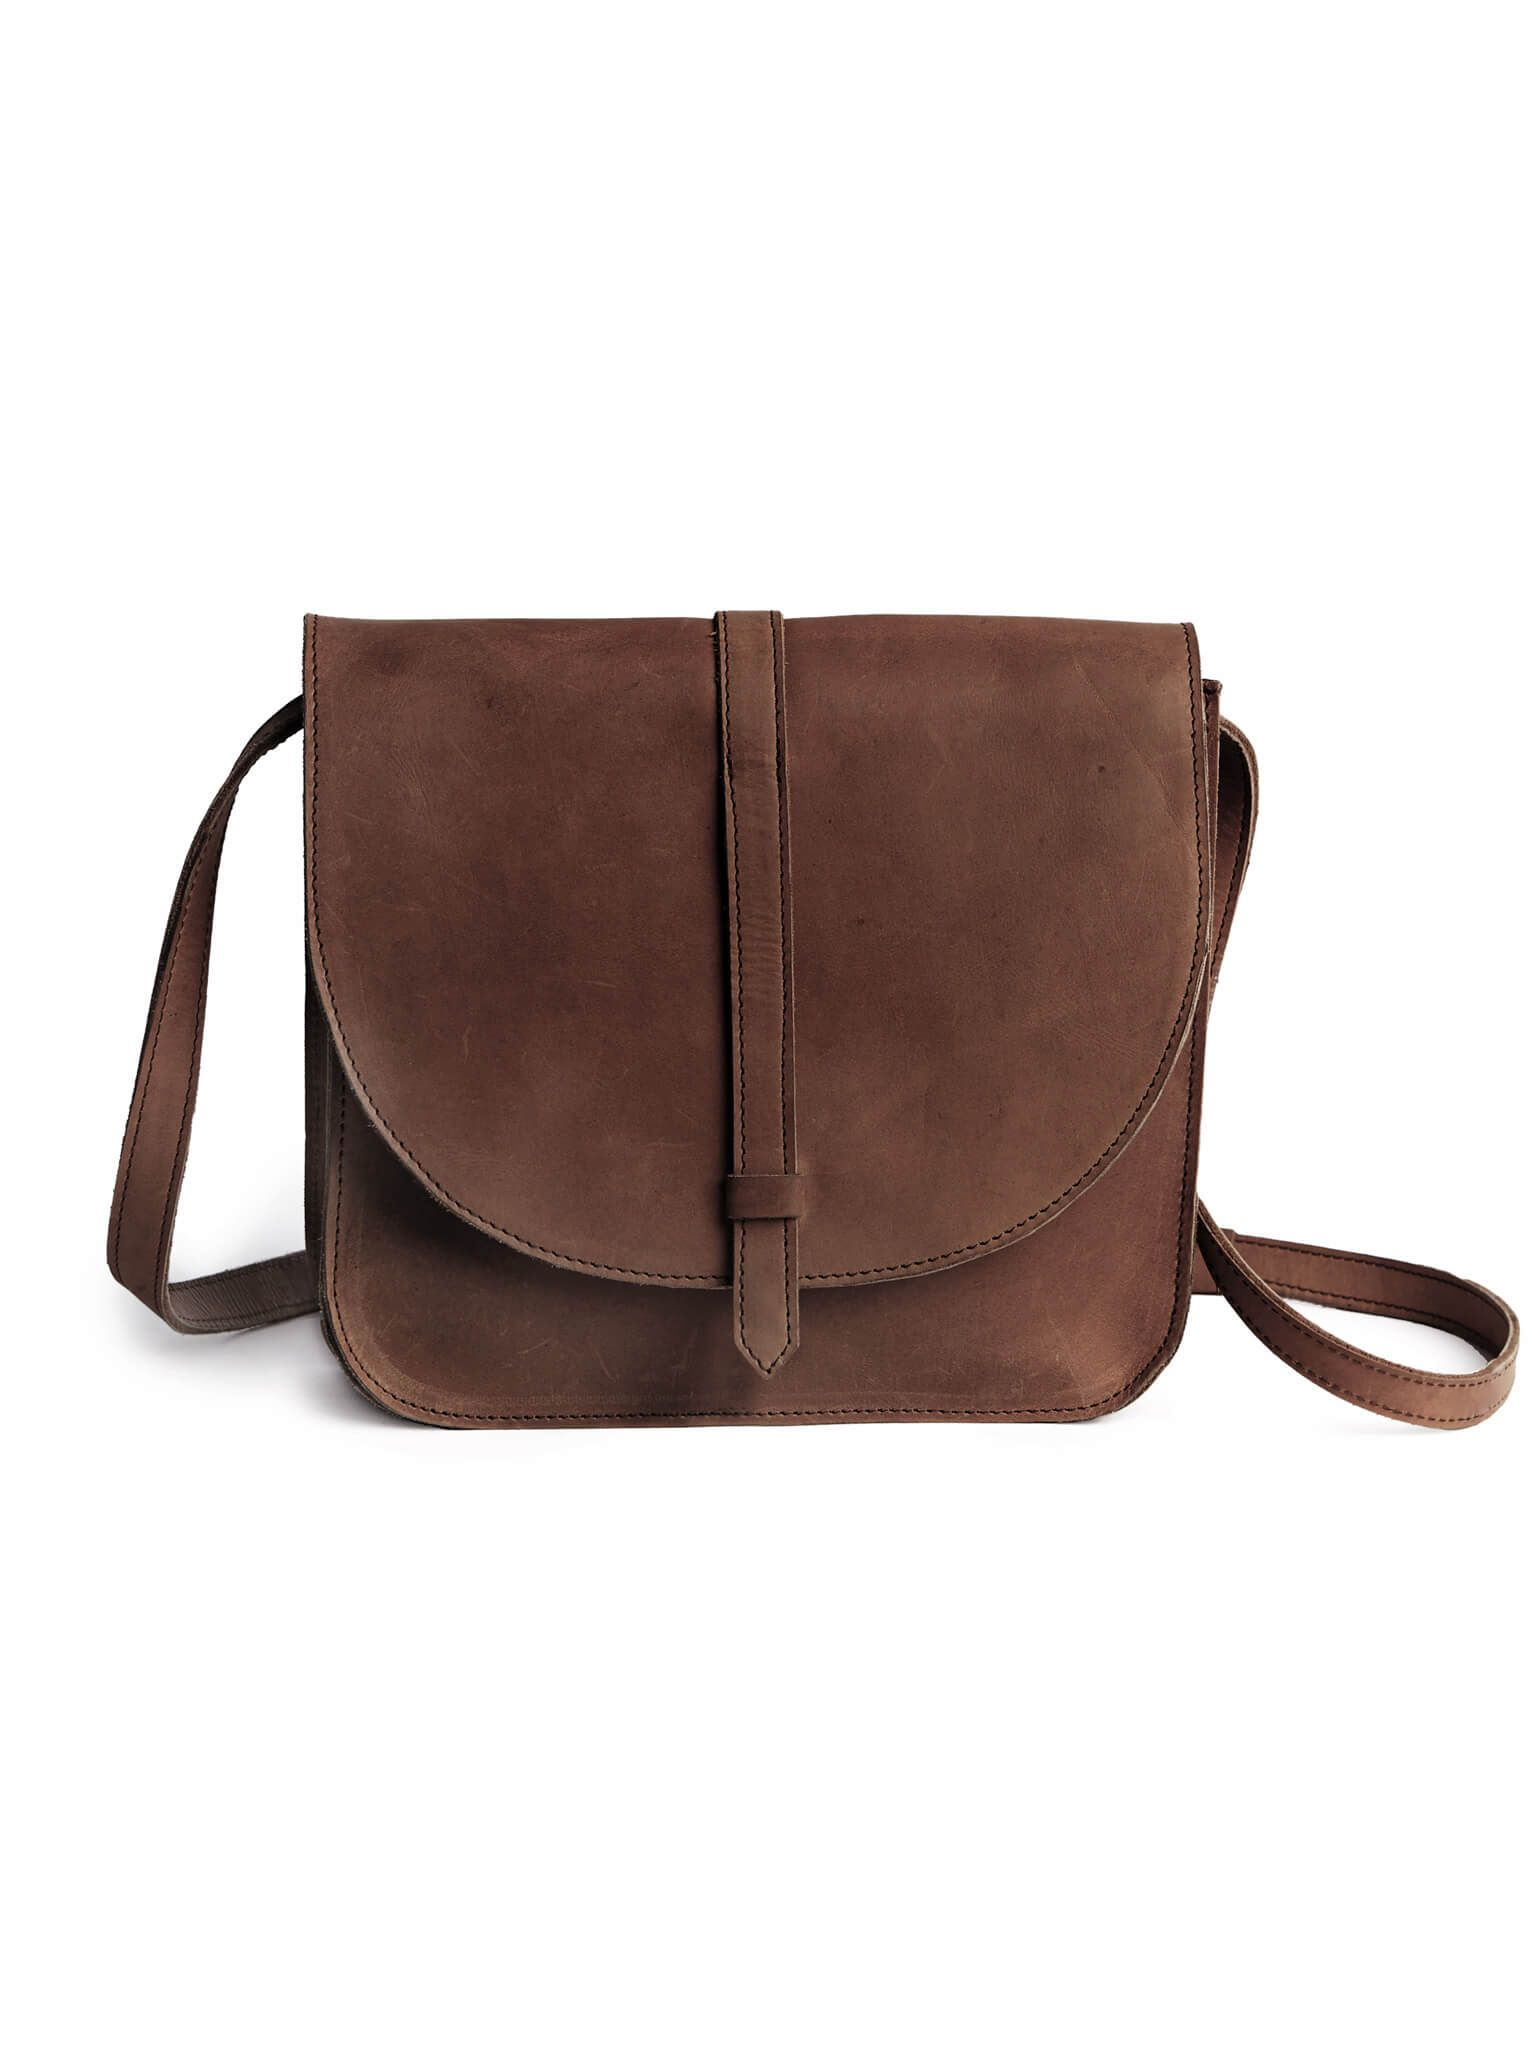 Tirhas Saddlebag Beautiful Bag Made By Women Who Are Overcoming Difficulty In Ethiopia